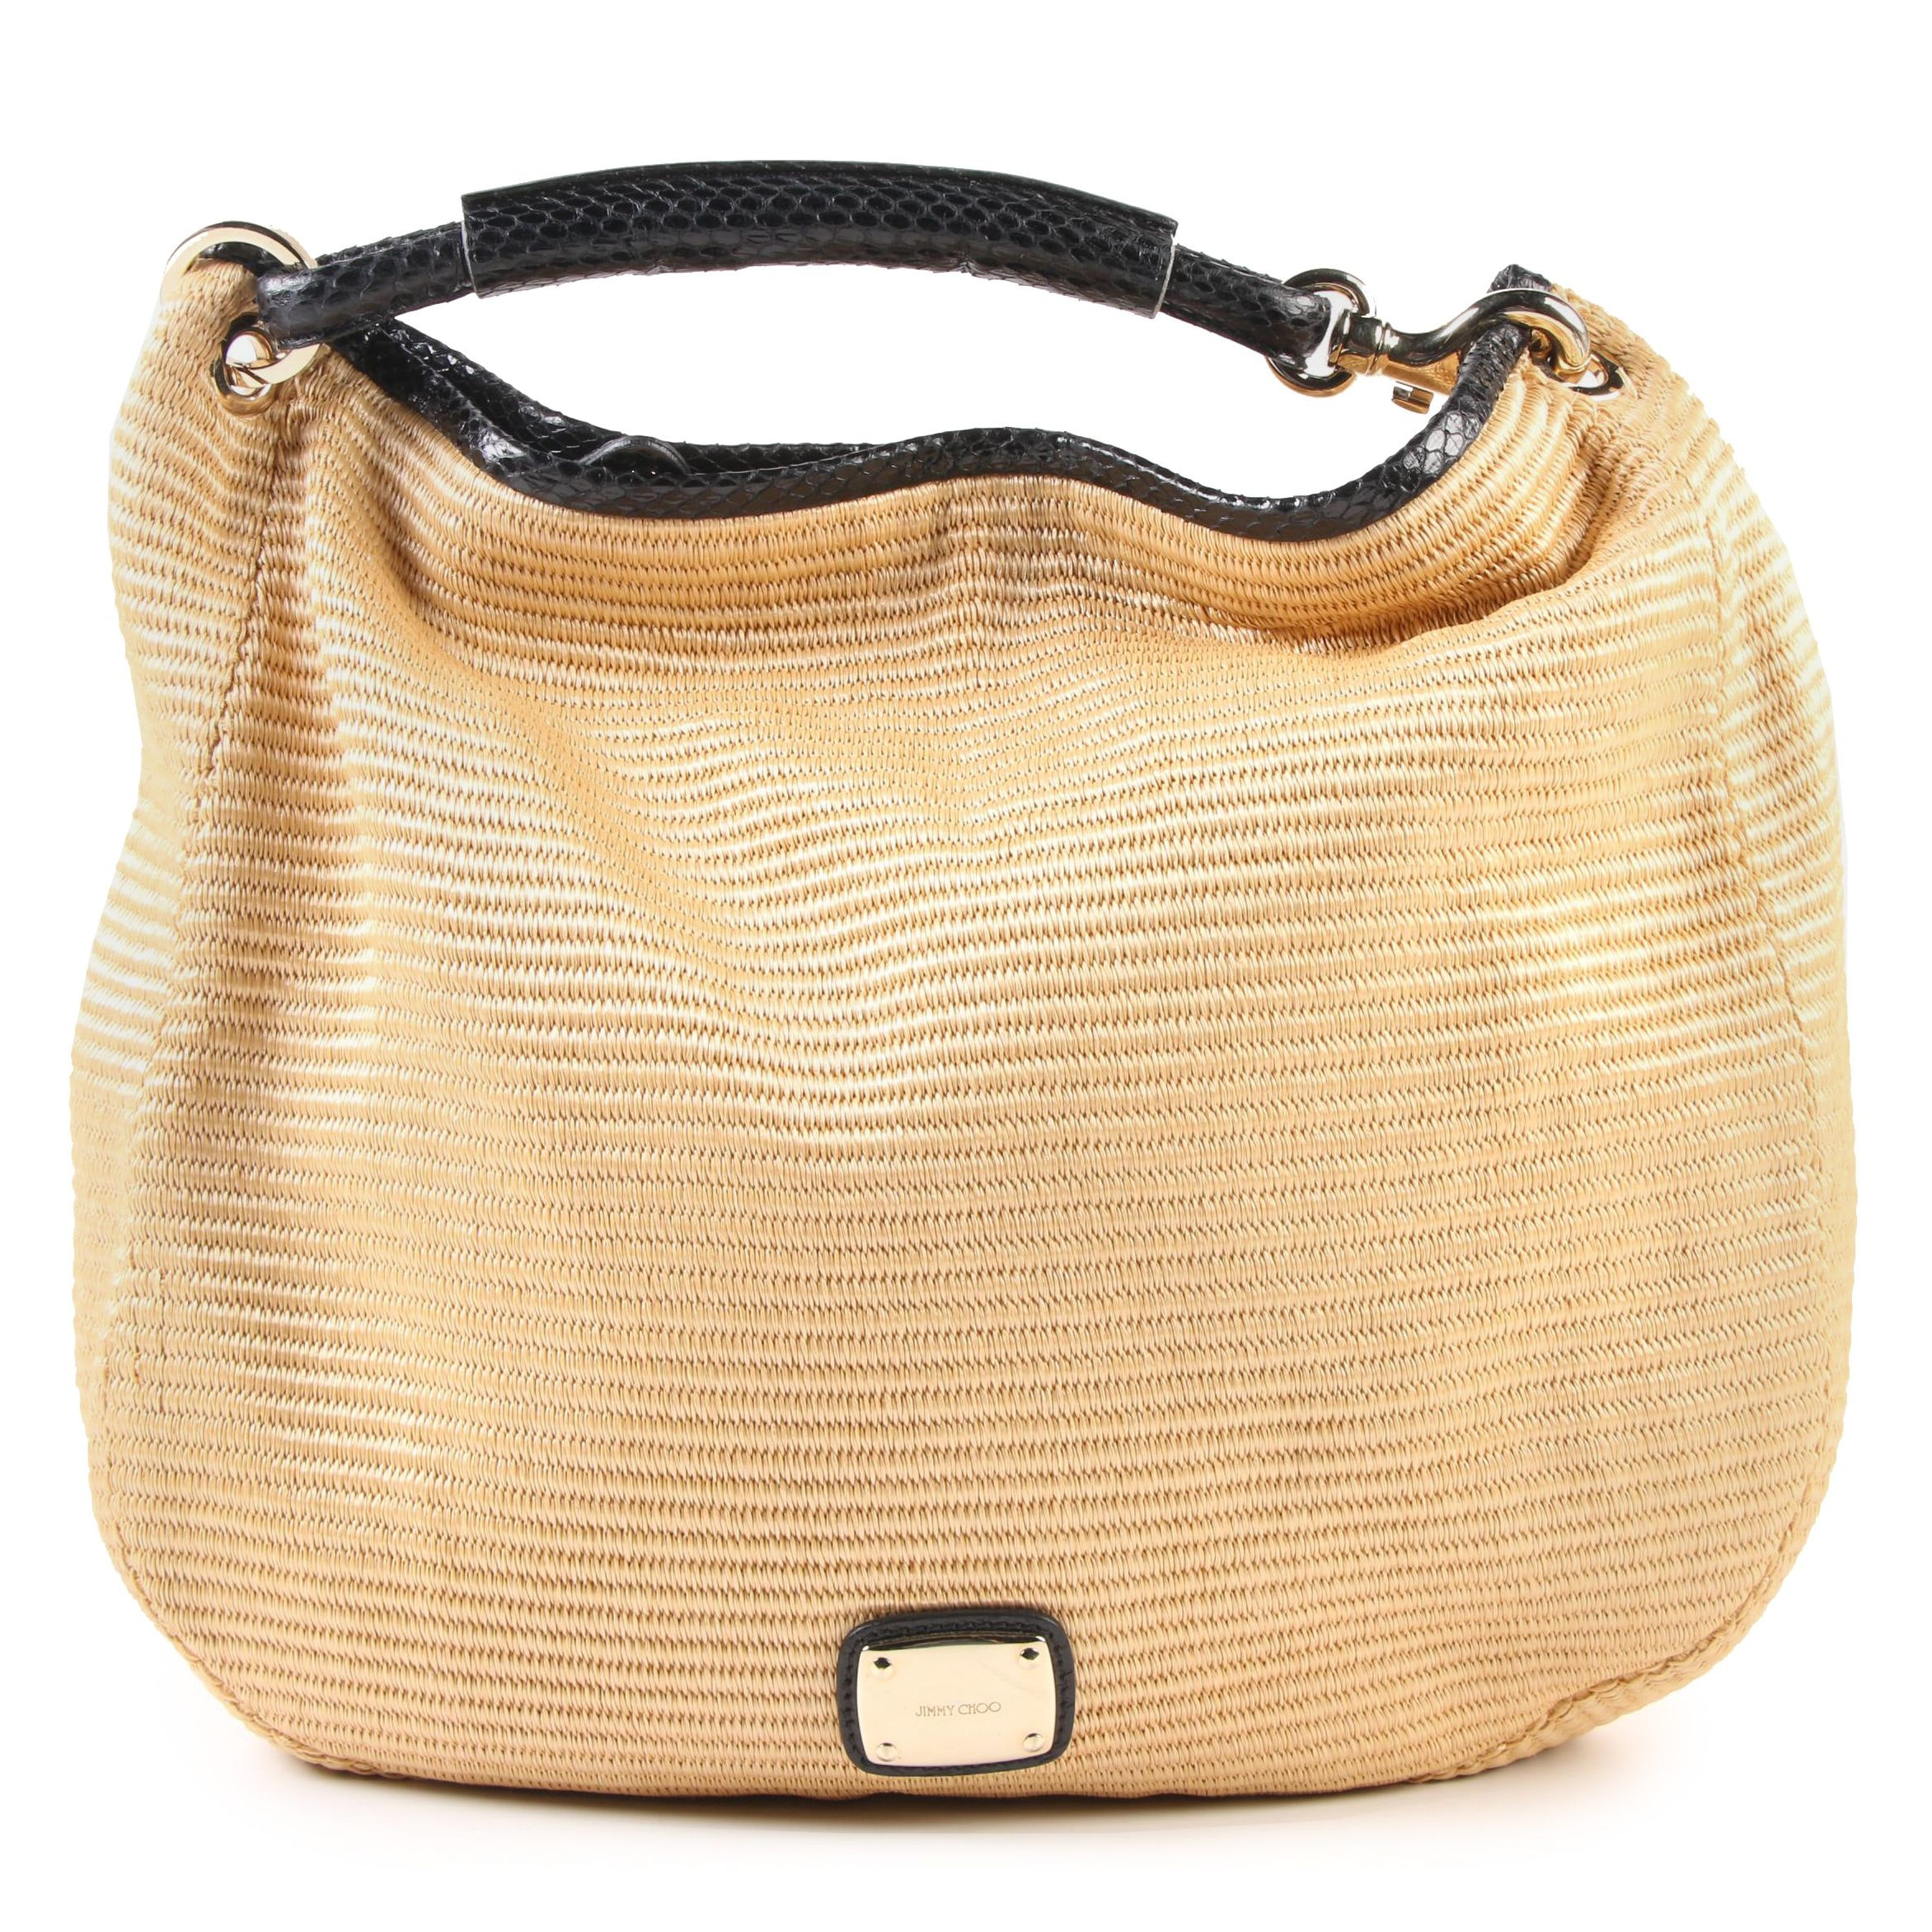 Jimmy Choo Sky Hobo Bag in Woven Raffia with Black Snakeskin Trim